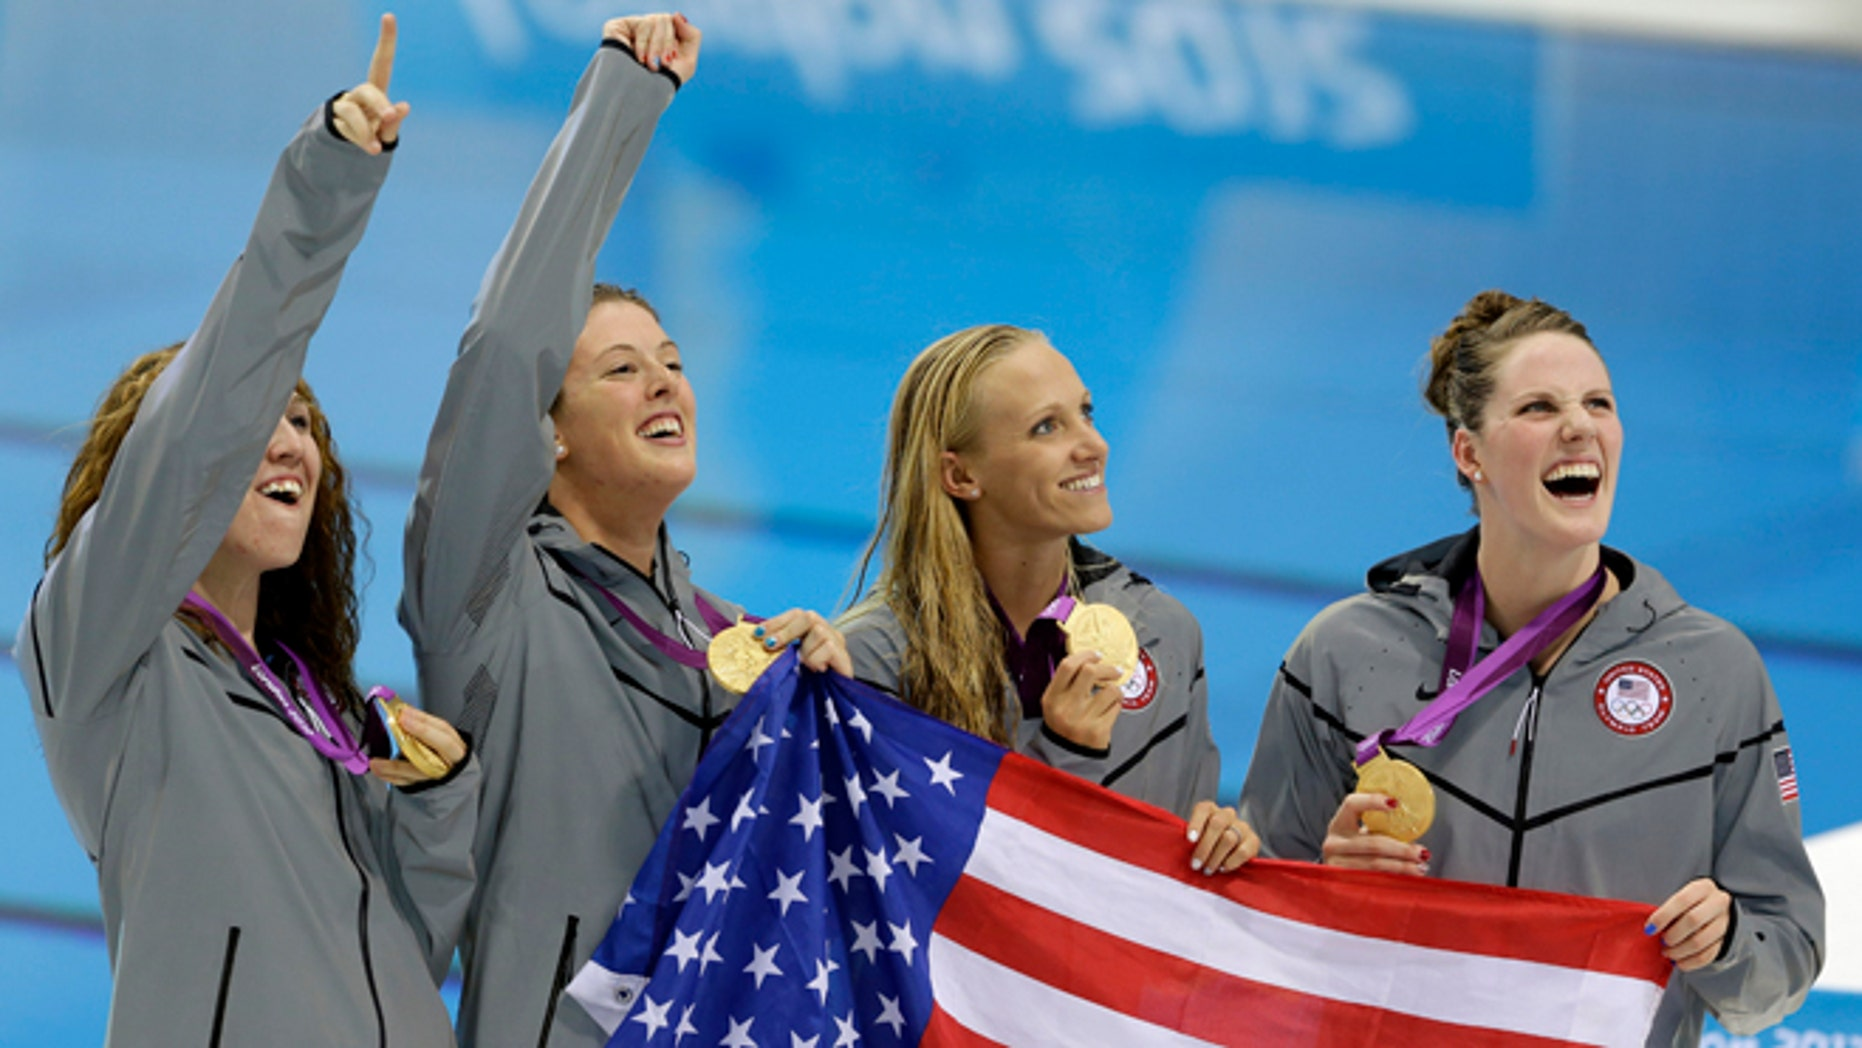 Aug. 1, 2012: From right, United States' Missy Franklin, United States' Dana Vollmer, United States' Allison Schmitt and United States' Shannon Vreeland pose with their gold medals for the women's 4x200-meter freestyle relay swimming final at the Aquatics Centre in the Olympic Park during the 2012 Summer Olympics in London.